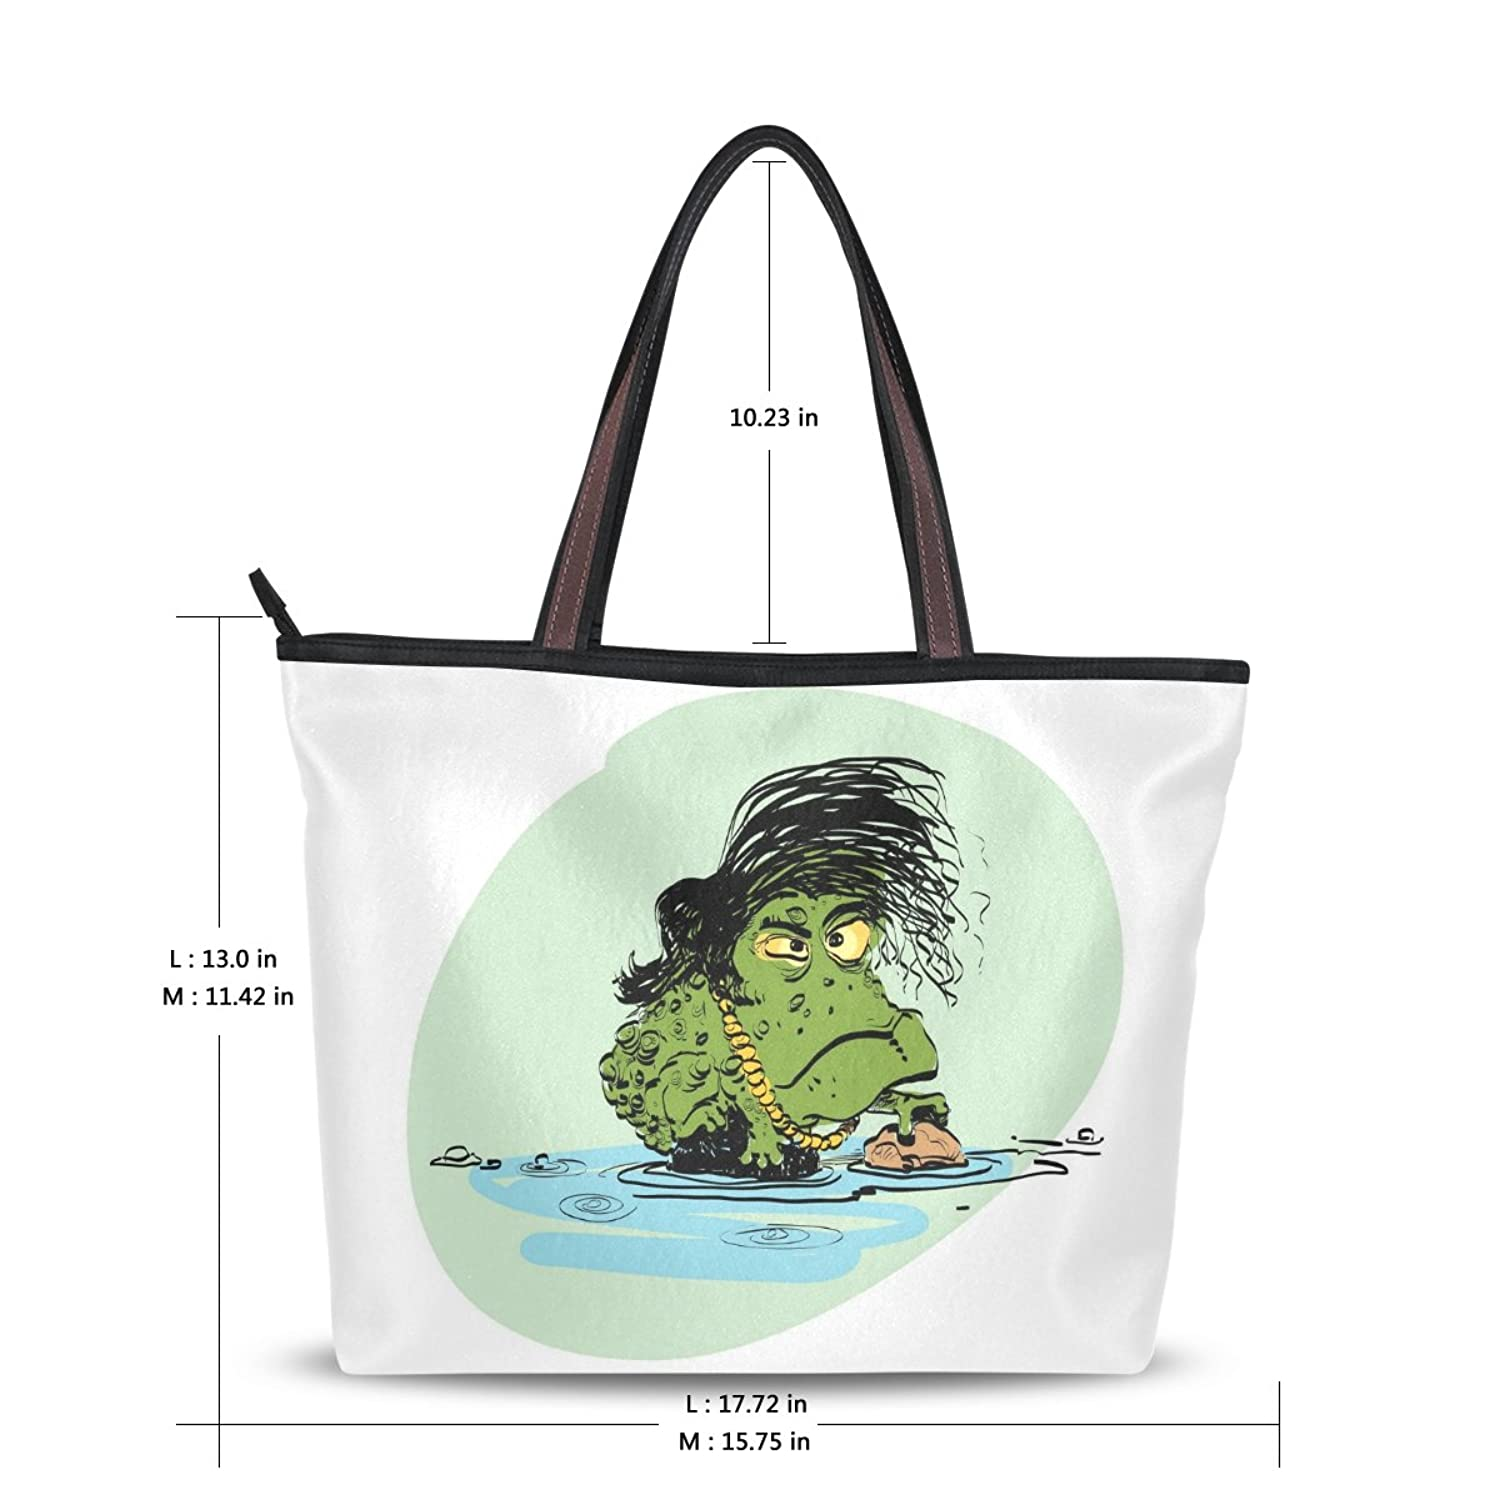 Lightweight Tote bag,Animal Primitive Dinosaurs,Handbag for Women